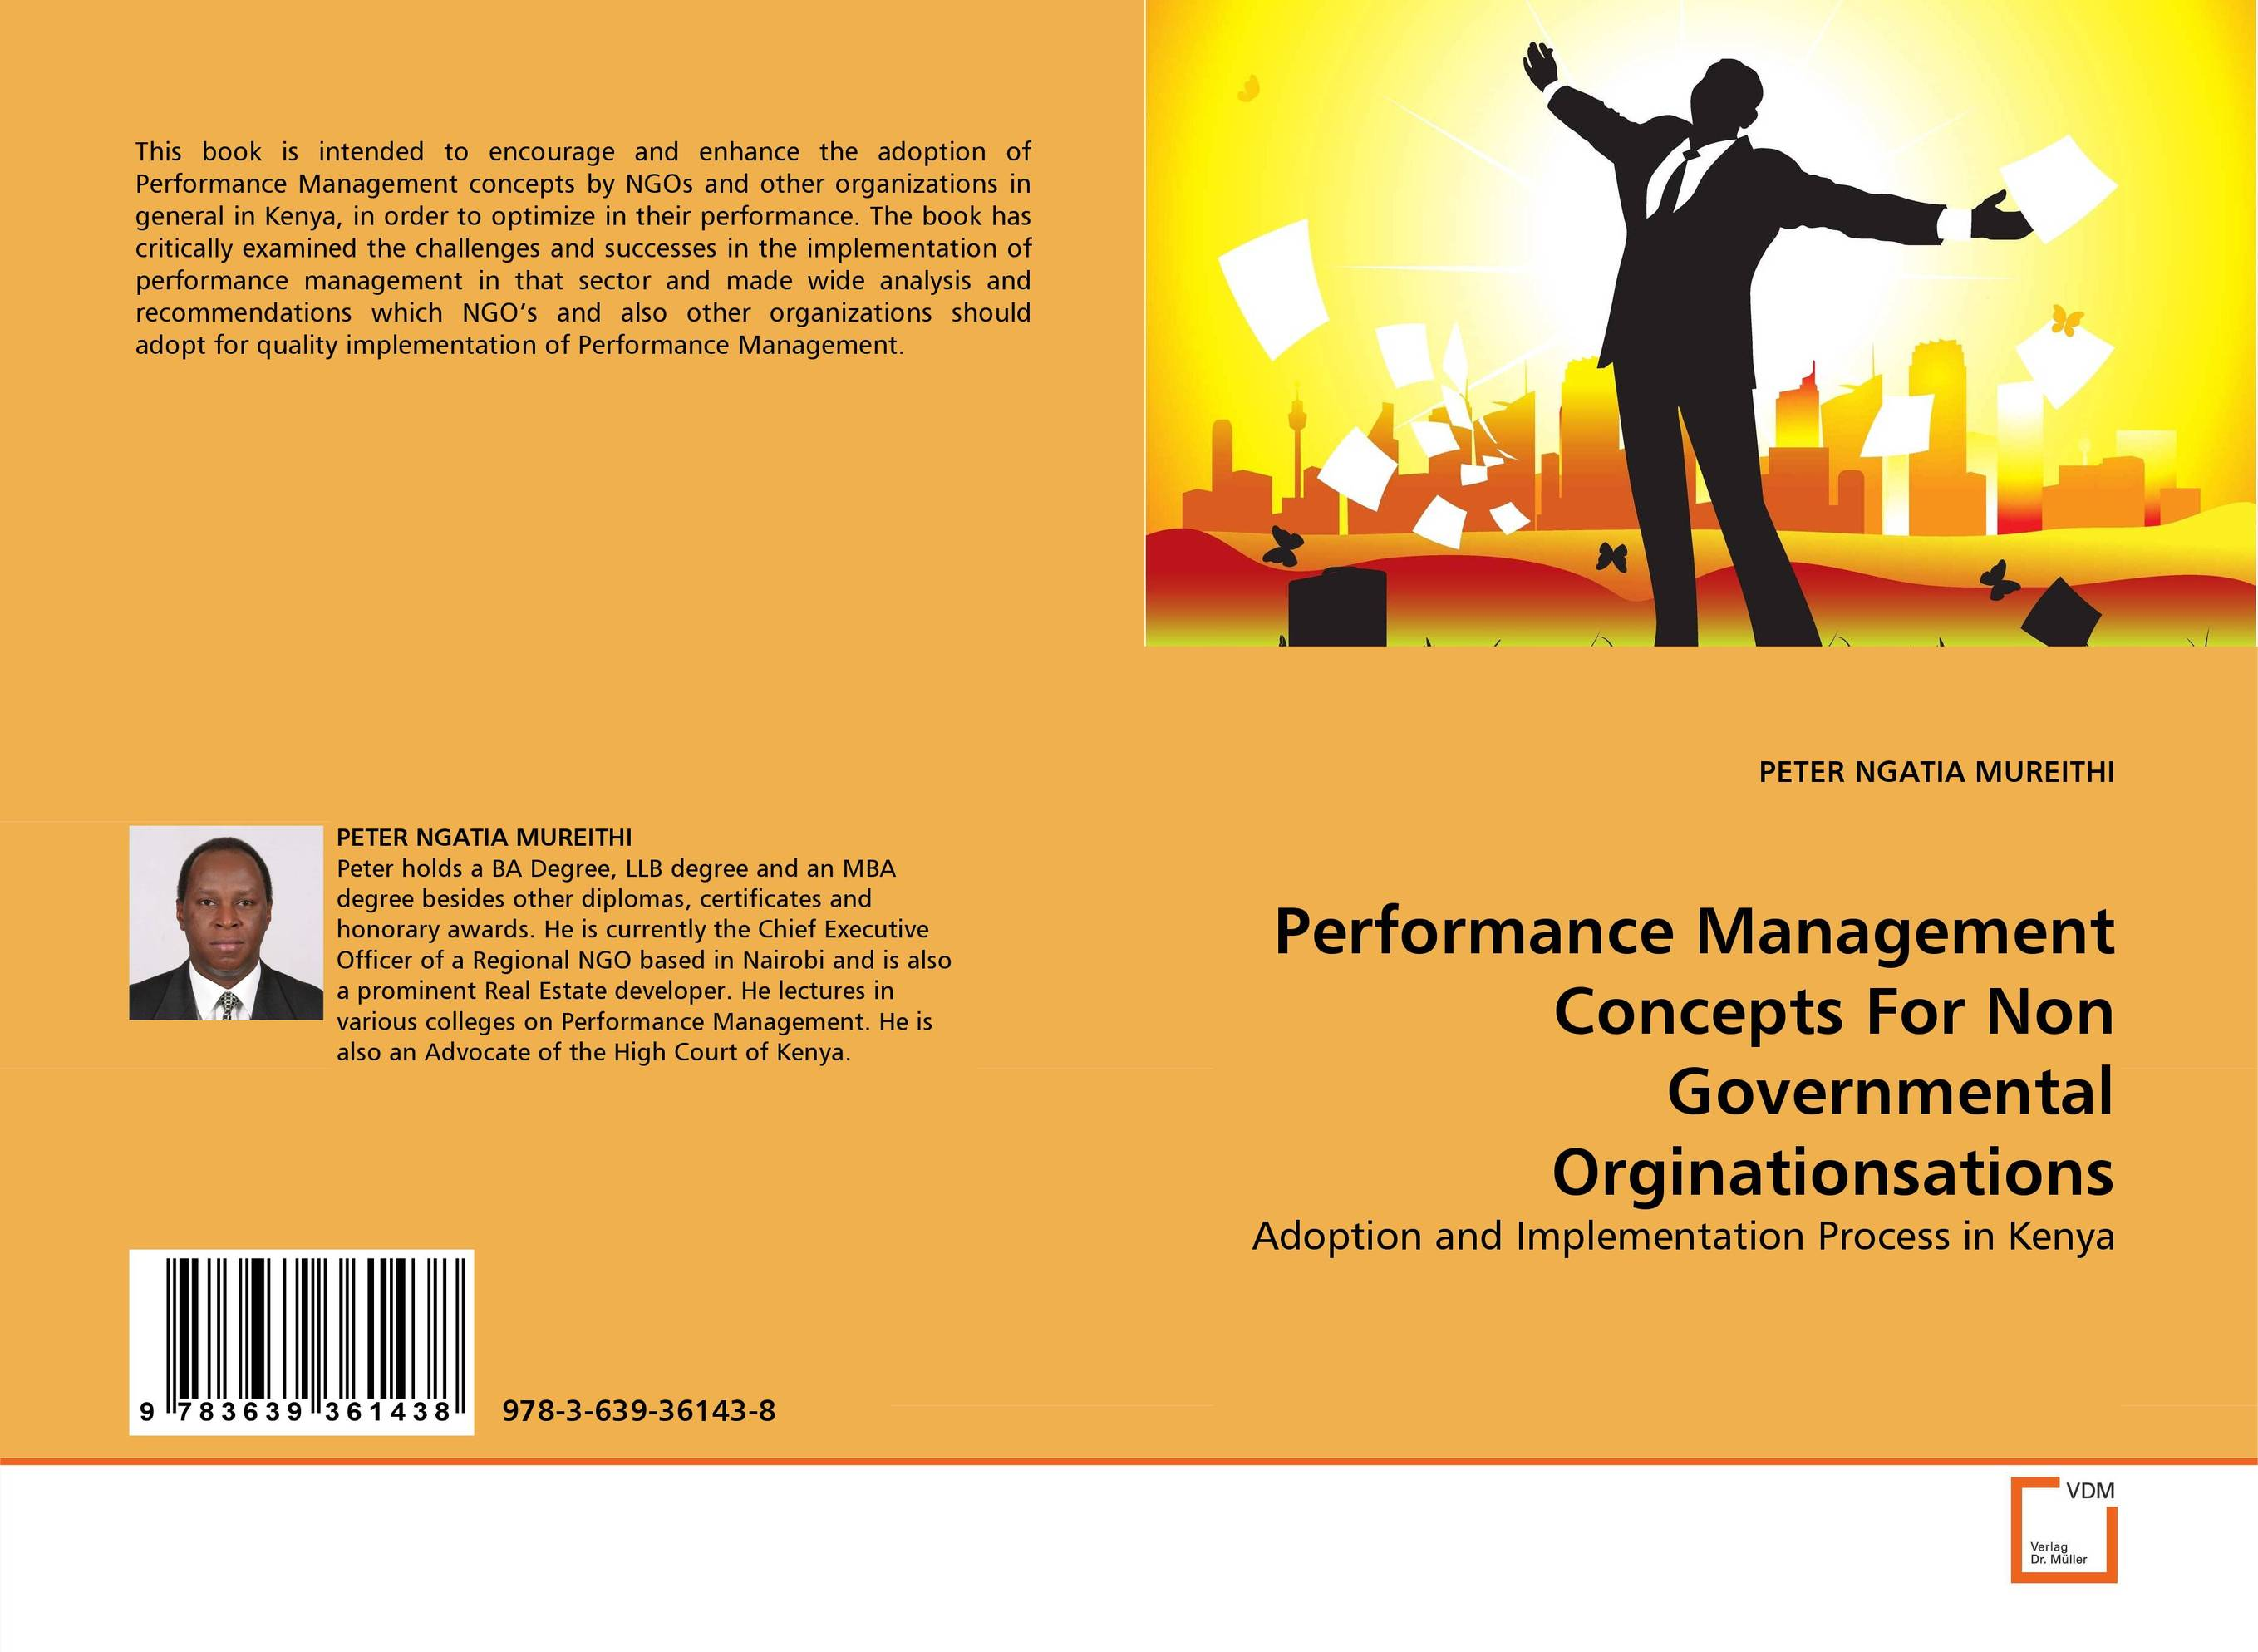 Performance Management Concepts For Non Governmental Orginationsations